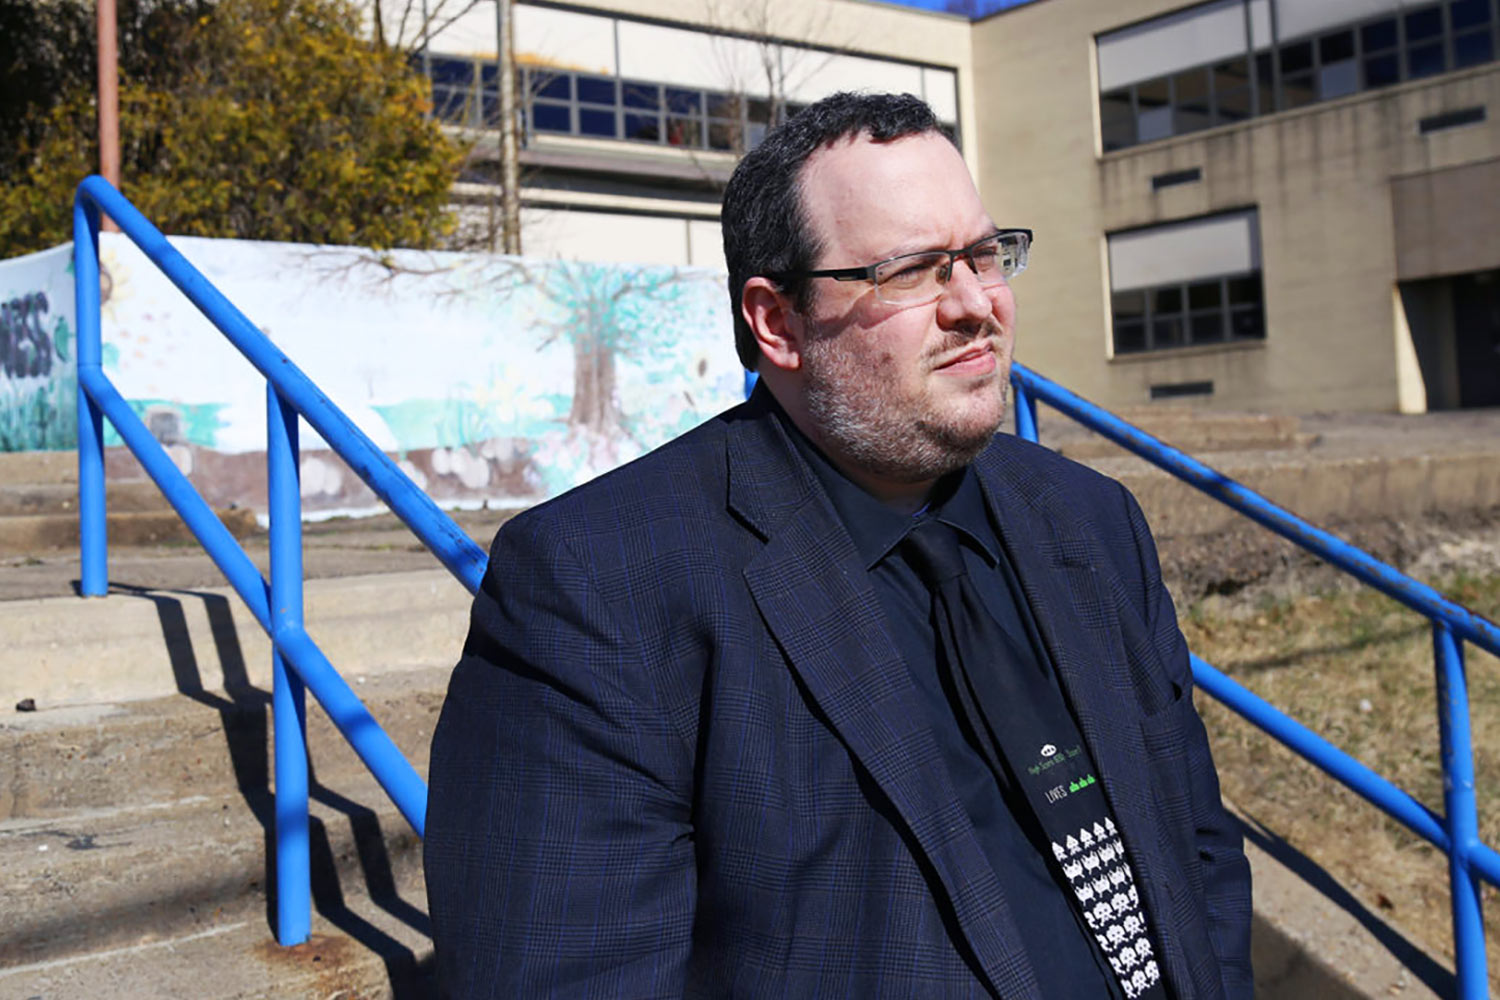 Steven Singer is a teacher at Steel Valley Middle School. Here he is photographed outside White Oak Elementary School, where he attended as a child. The school closed in recent years. (Photo by Ryan Loew/PublicSource)